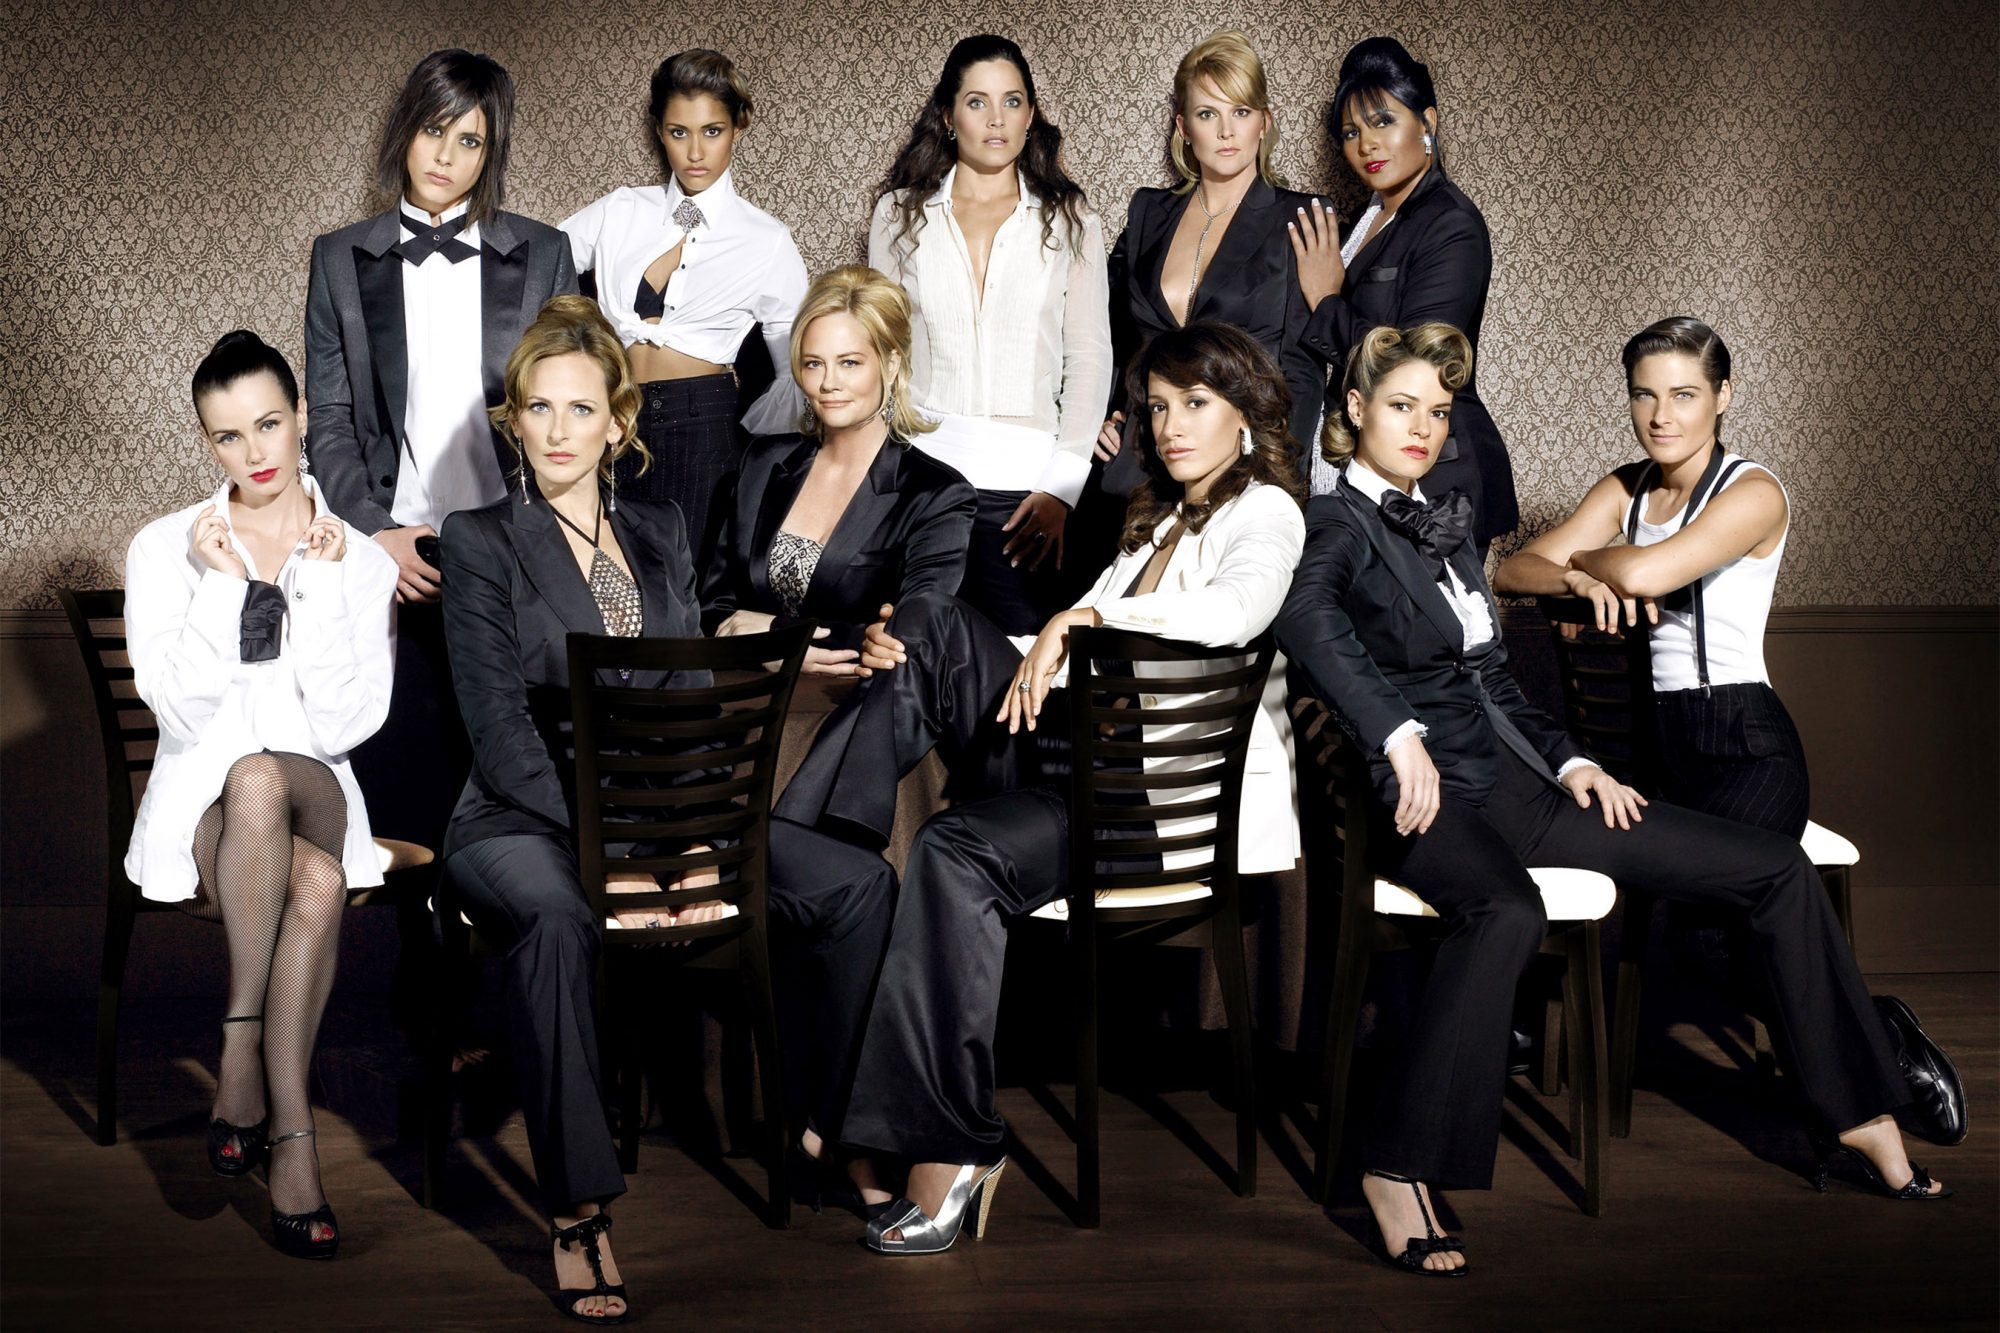 The women of The L Word